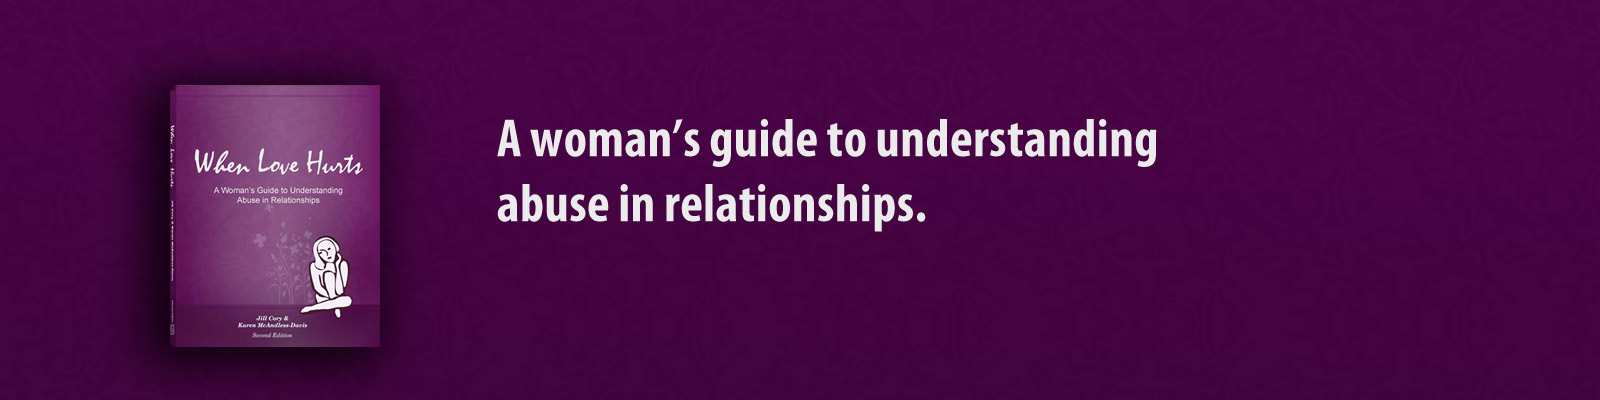 A women's guide to understanding abuse in relationships